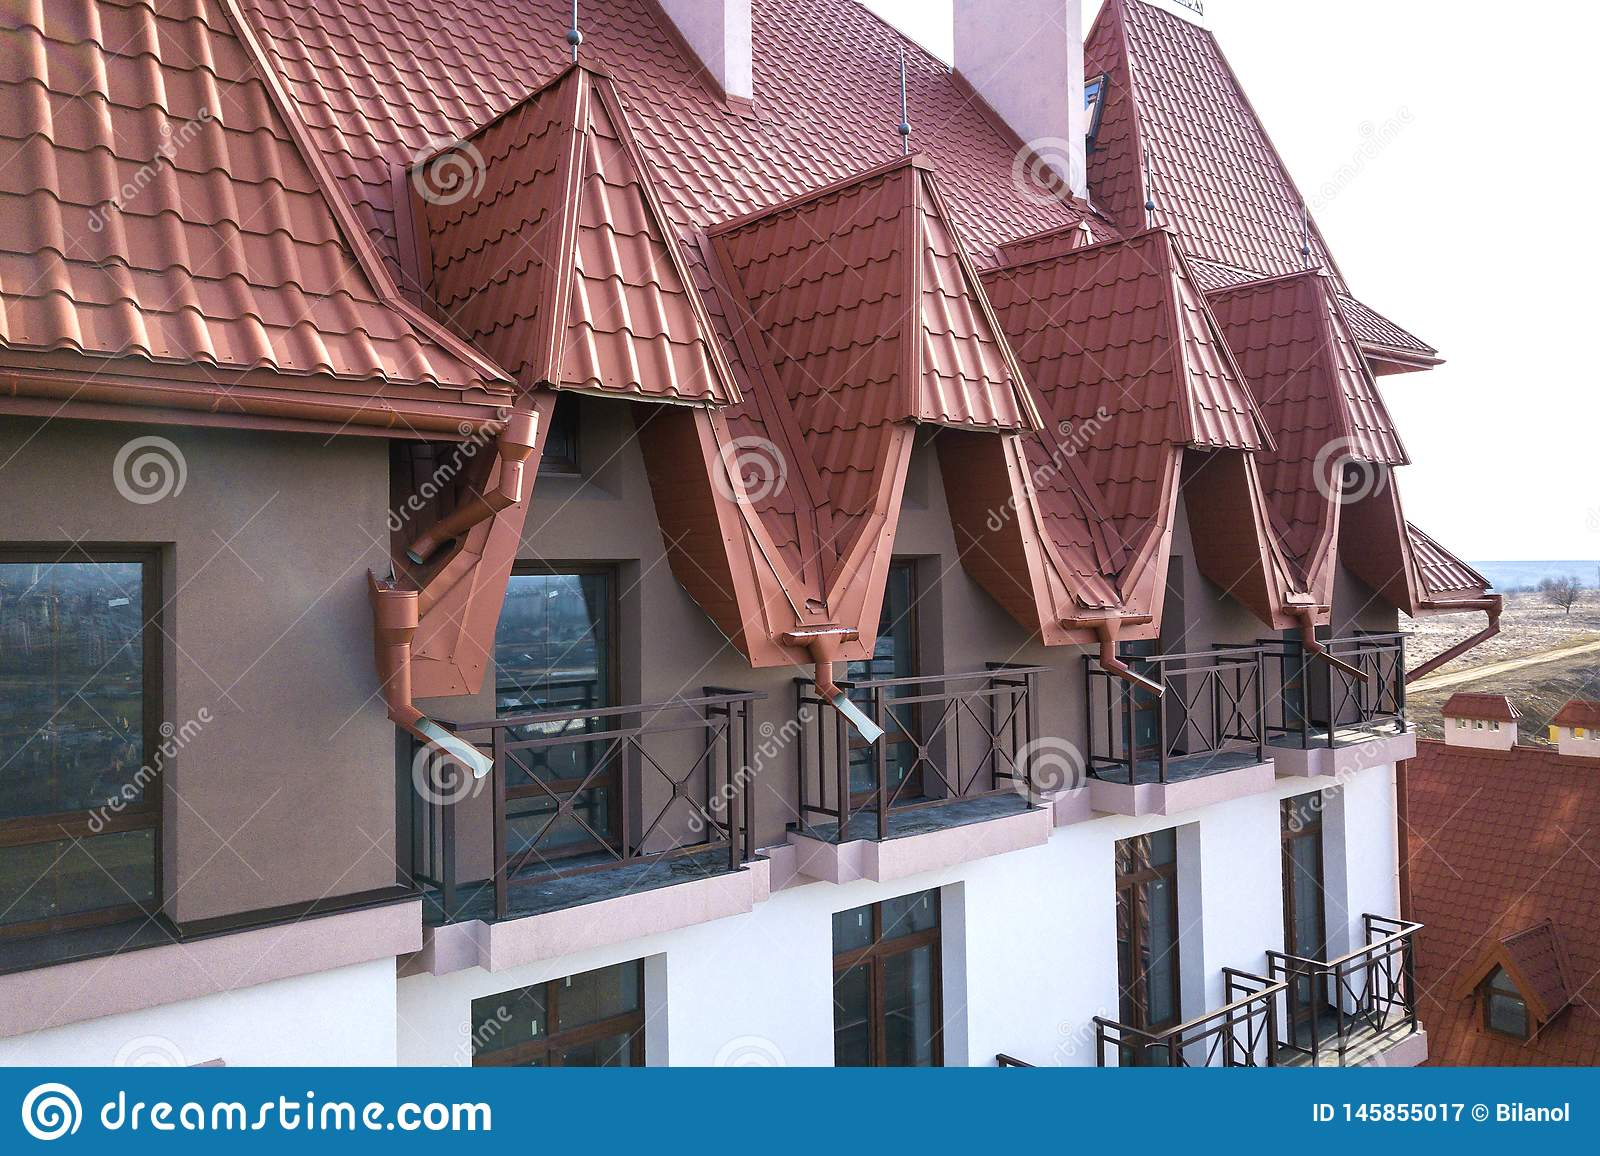 1 490 Roof Railings Photos Free Royalty Free Stock Photos From Dreamstime